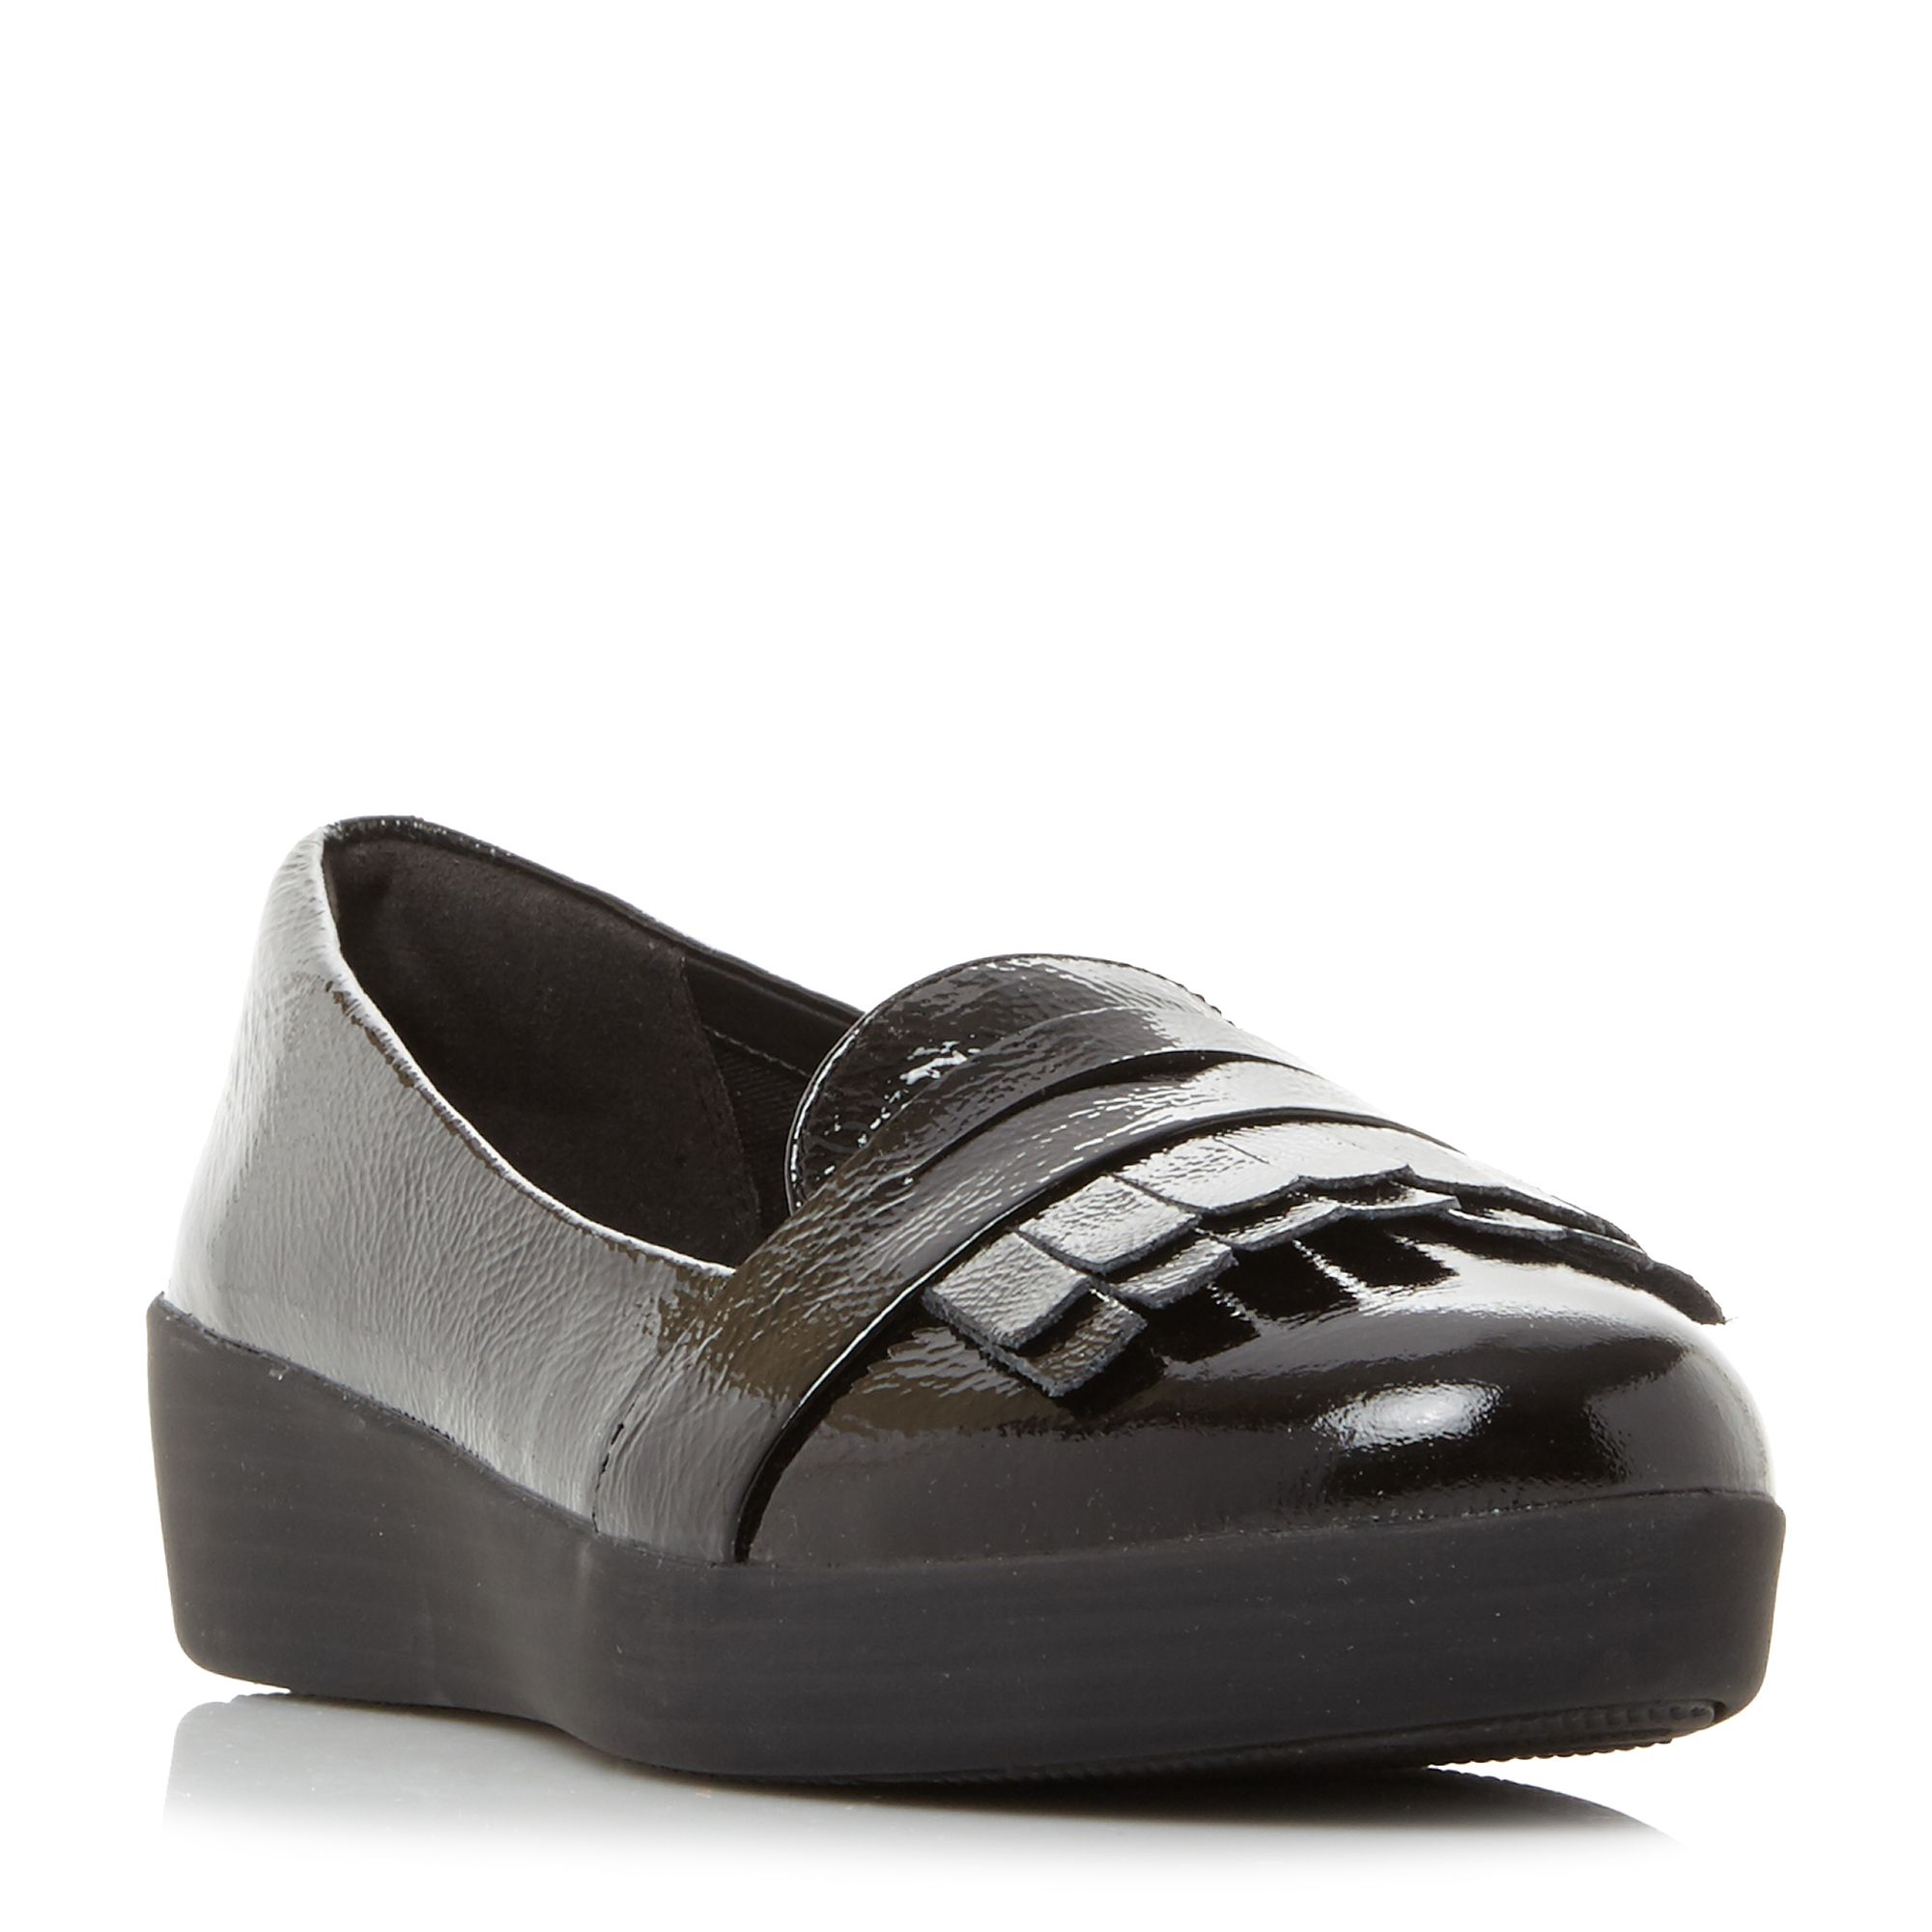 FitFlop Fringey Sneaker Patent Fringed Loafers, Black